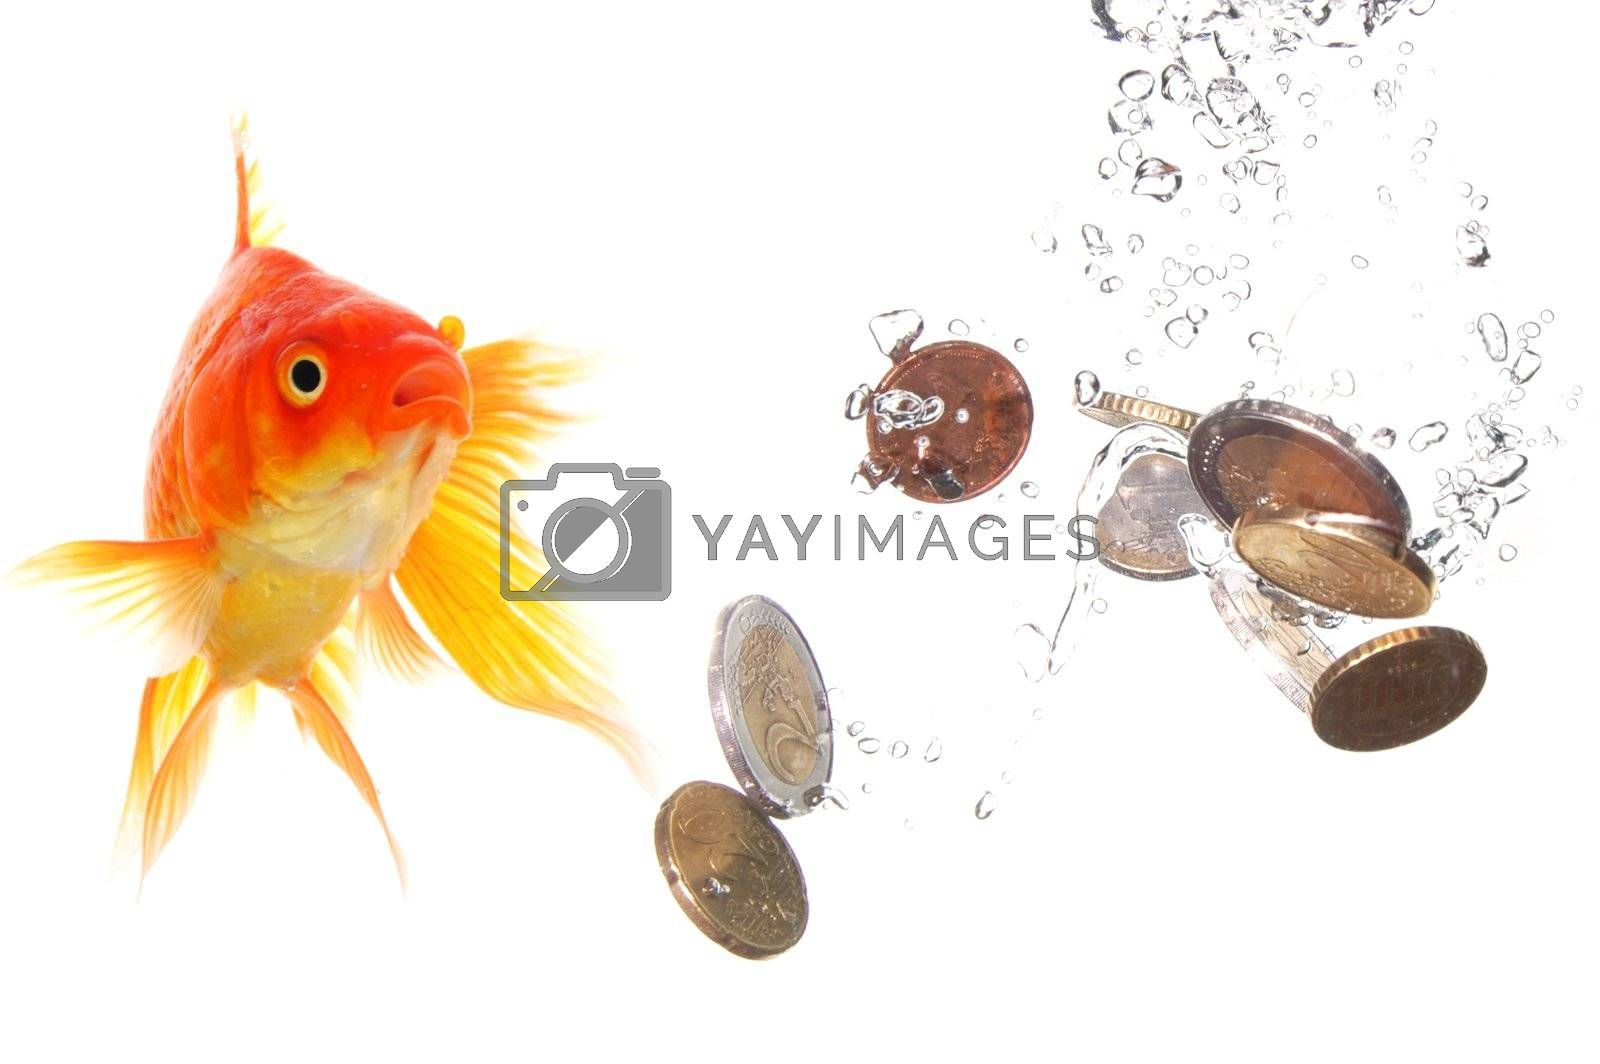 Royalty free image of goldfish and money by gunnar3000